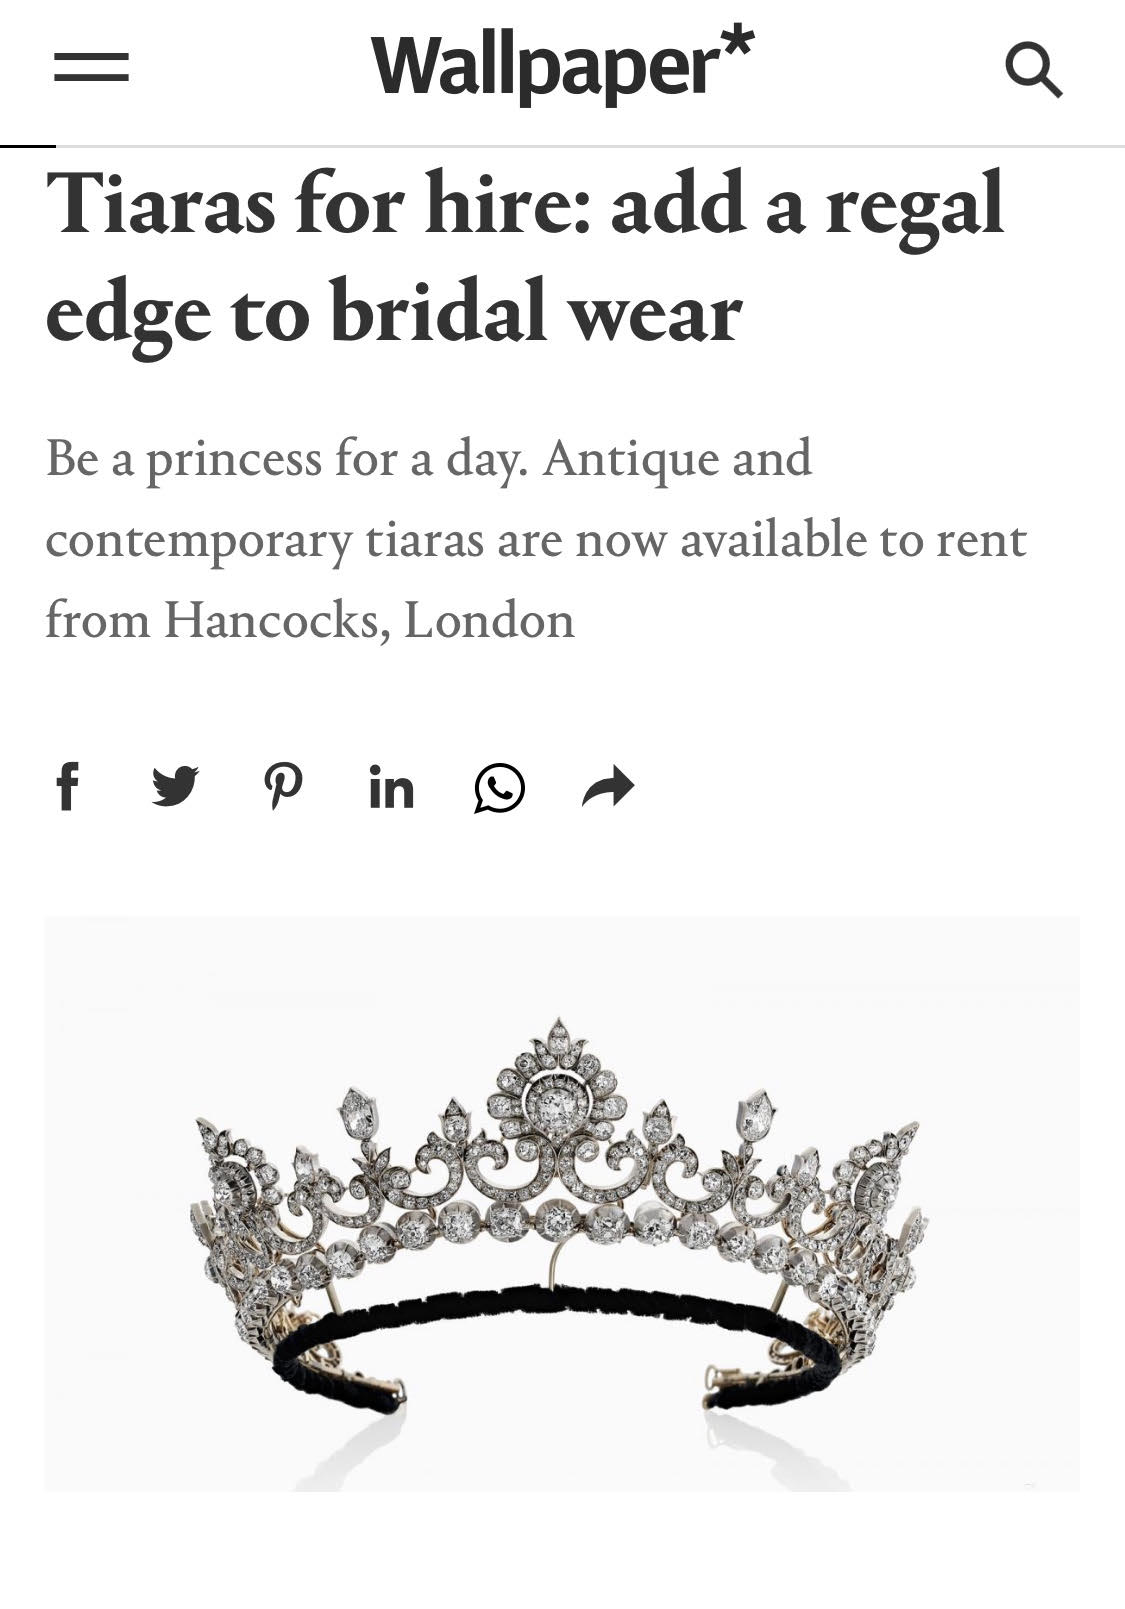 WE SPOKE TO WALLPAPER MAGAZINE ABOUT OUR NEW TIARA HIRE SERVICE